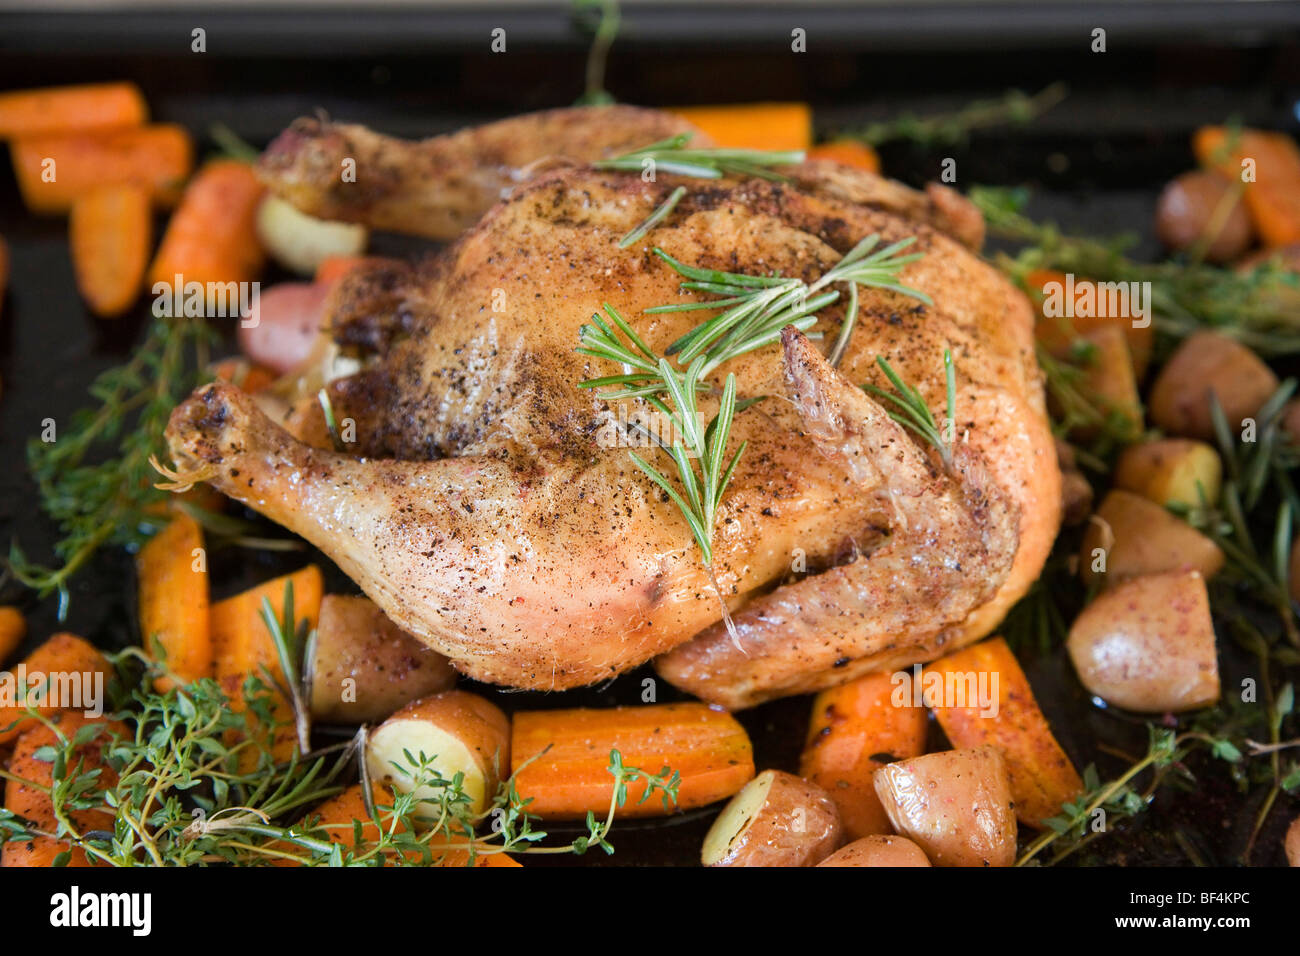 A roast chicken on a baking tray with rosemary, carrots, potatoes and sweet potatoes - Stock Image